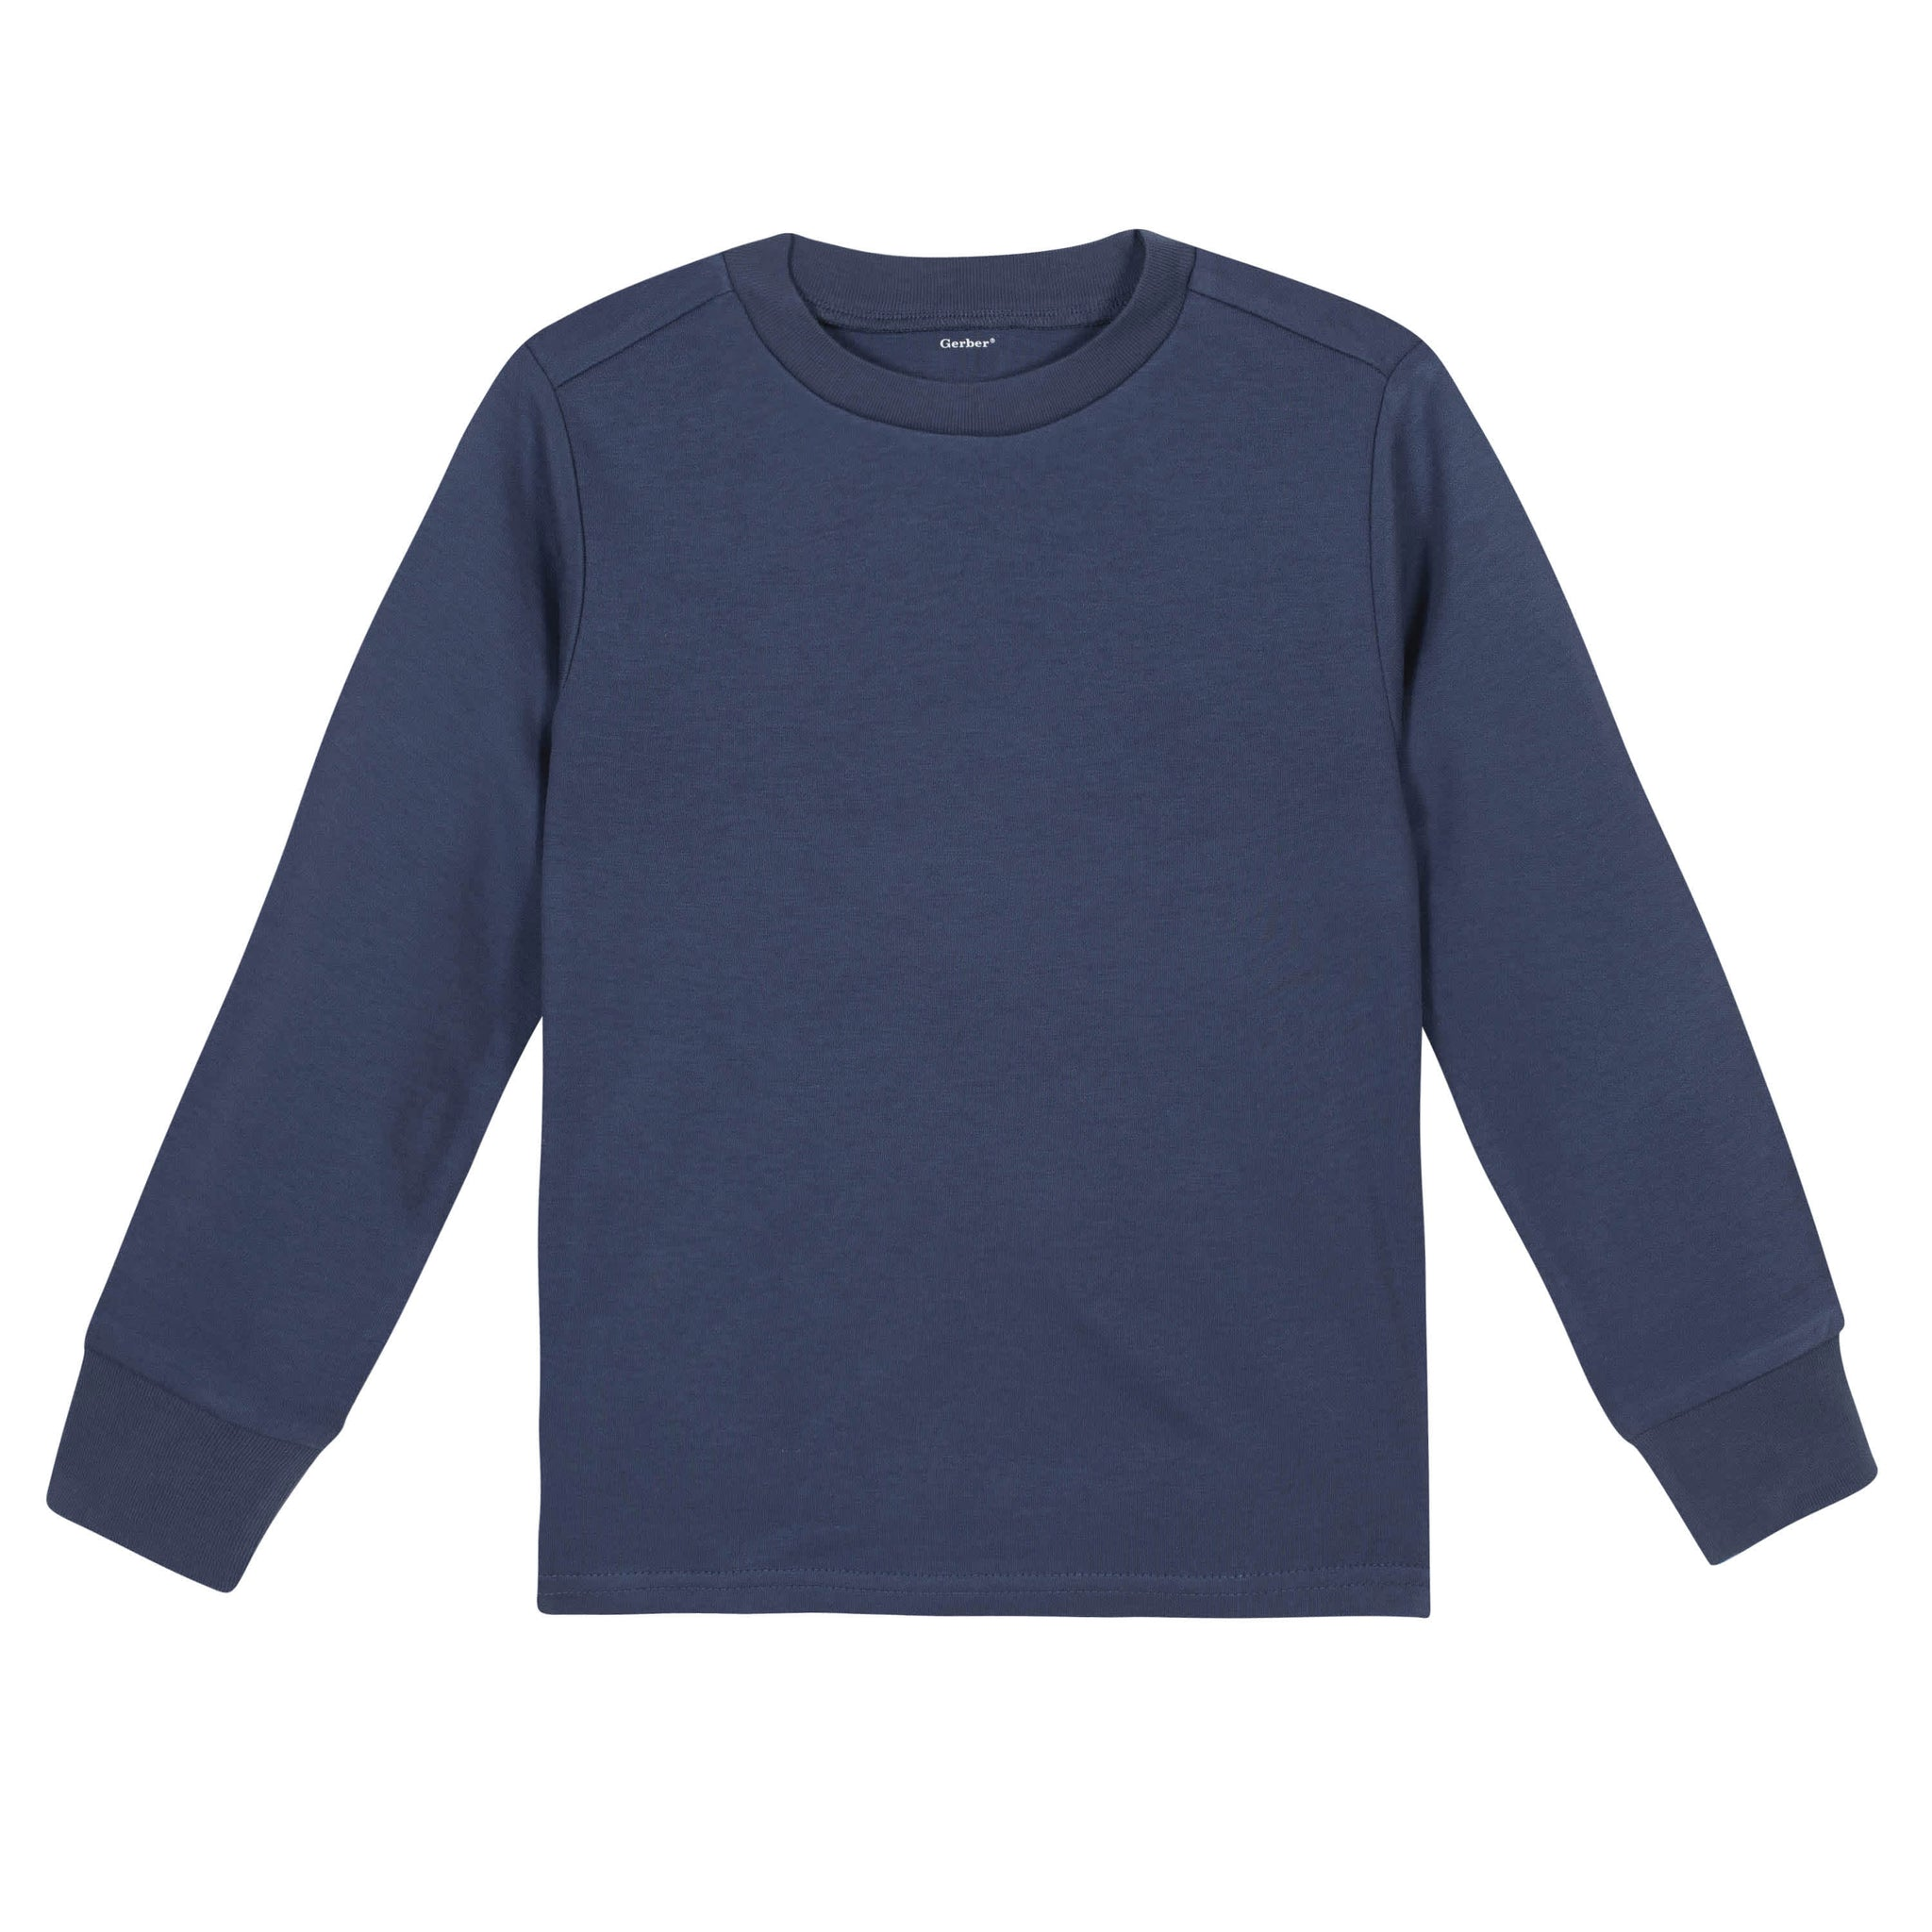 Gerber® Premium Navy Long Sleeve Tee Shirt - 10 Colors Available